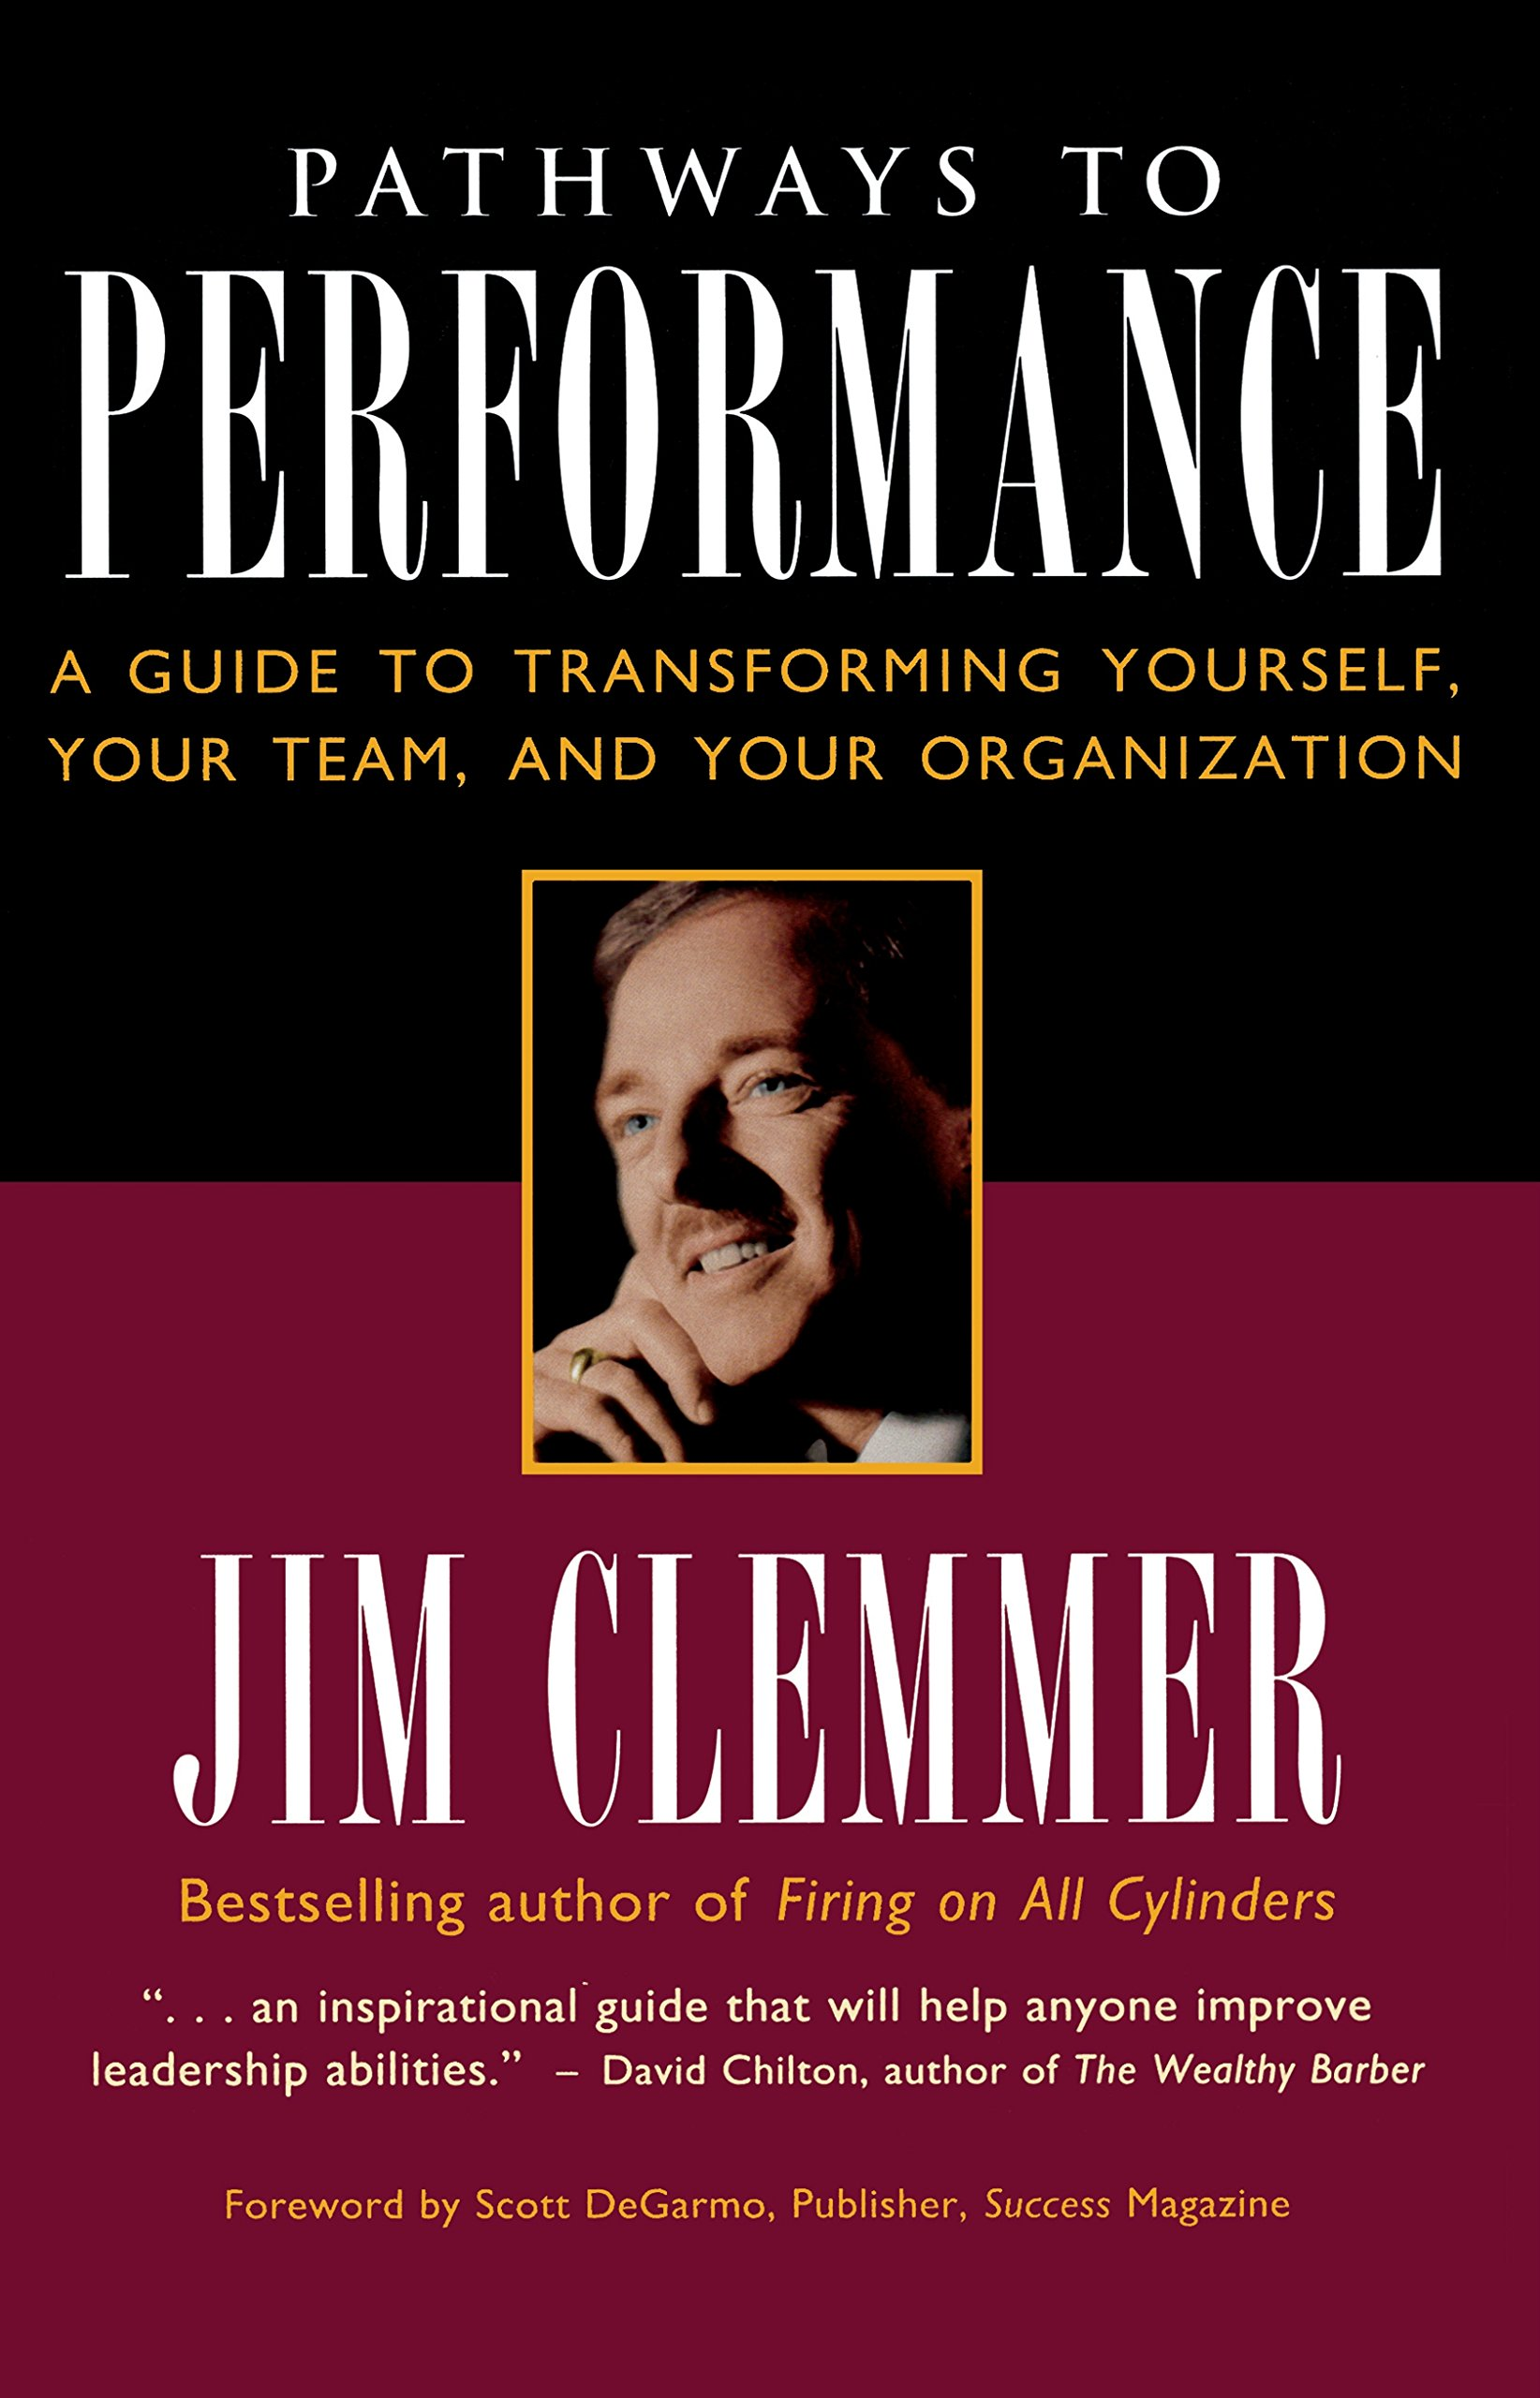 Pathways to Performance: A Guide to Transforming Yourself, Your Team, and Your Organization pdf